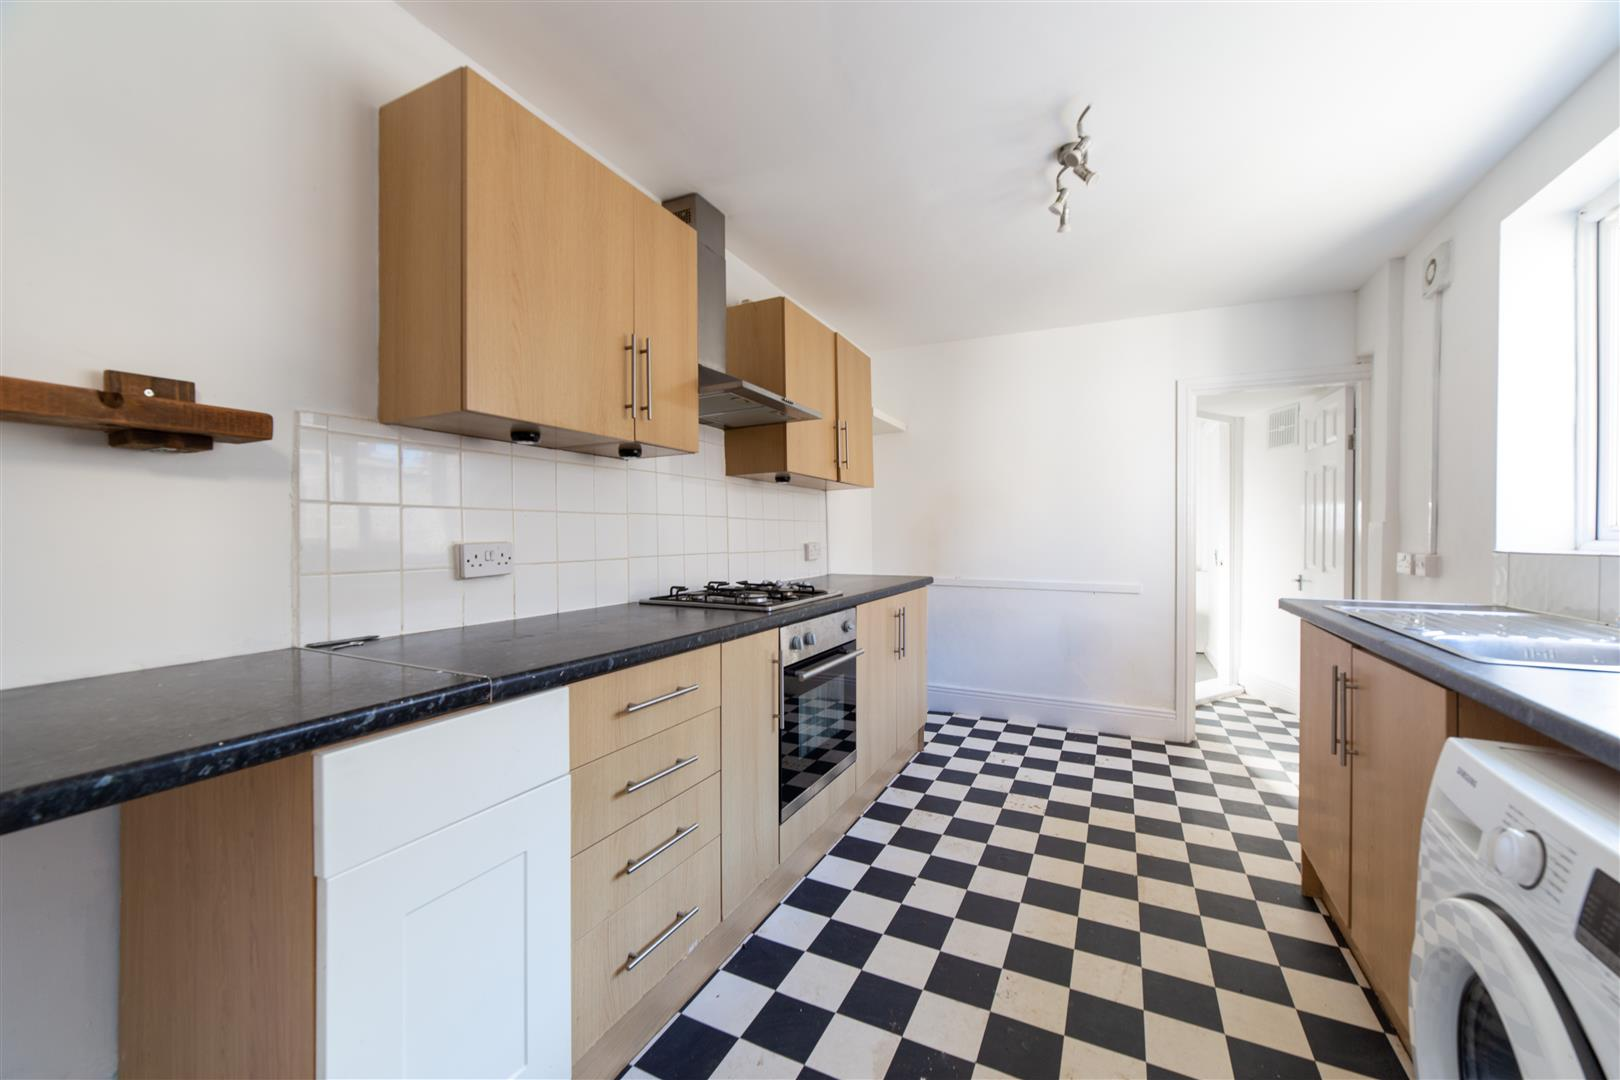 3 bed end of terrace house to rent in Whitby Street, North Shields - Property Image 1